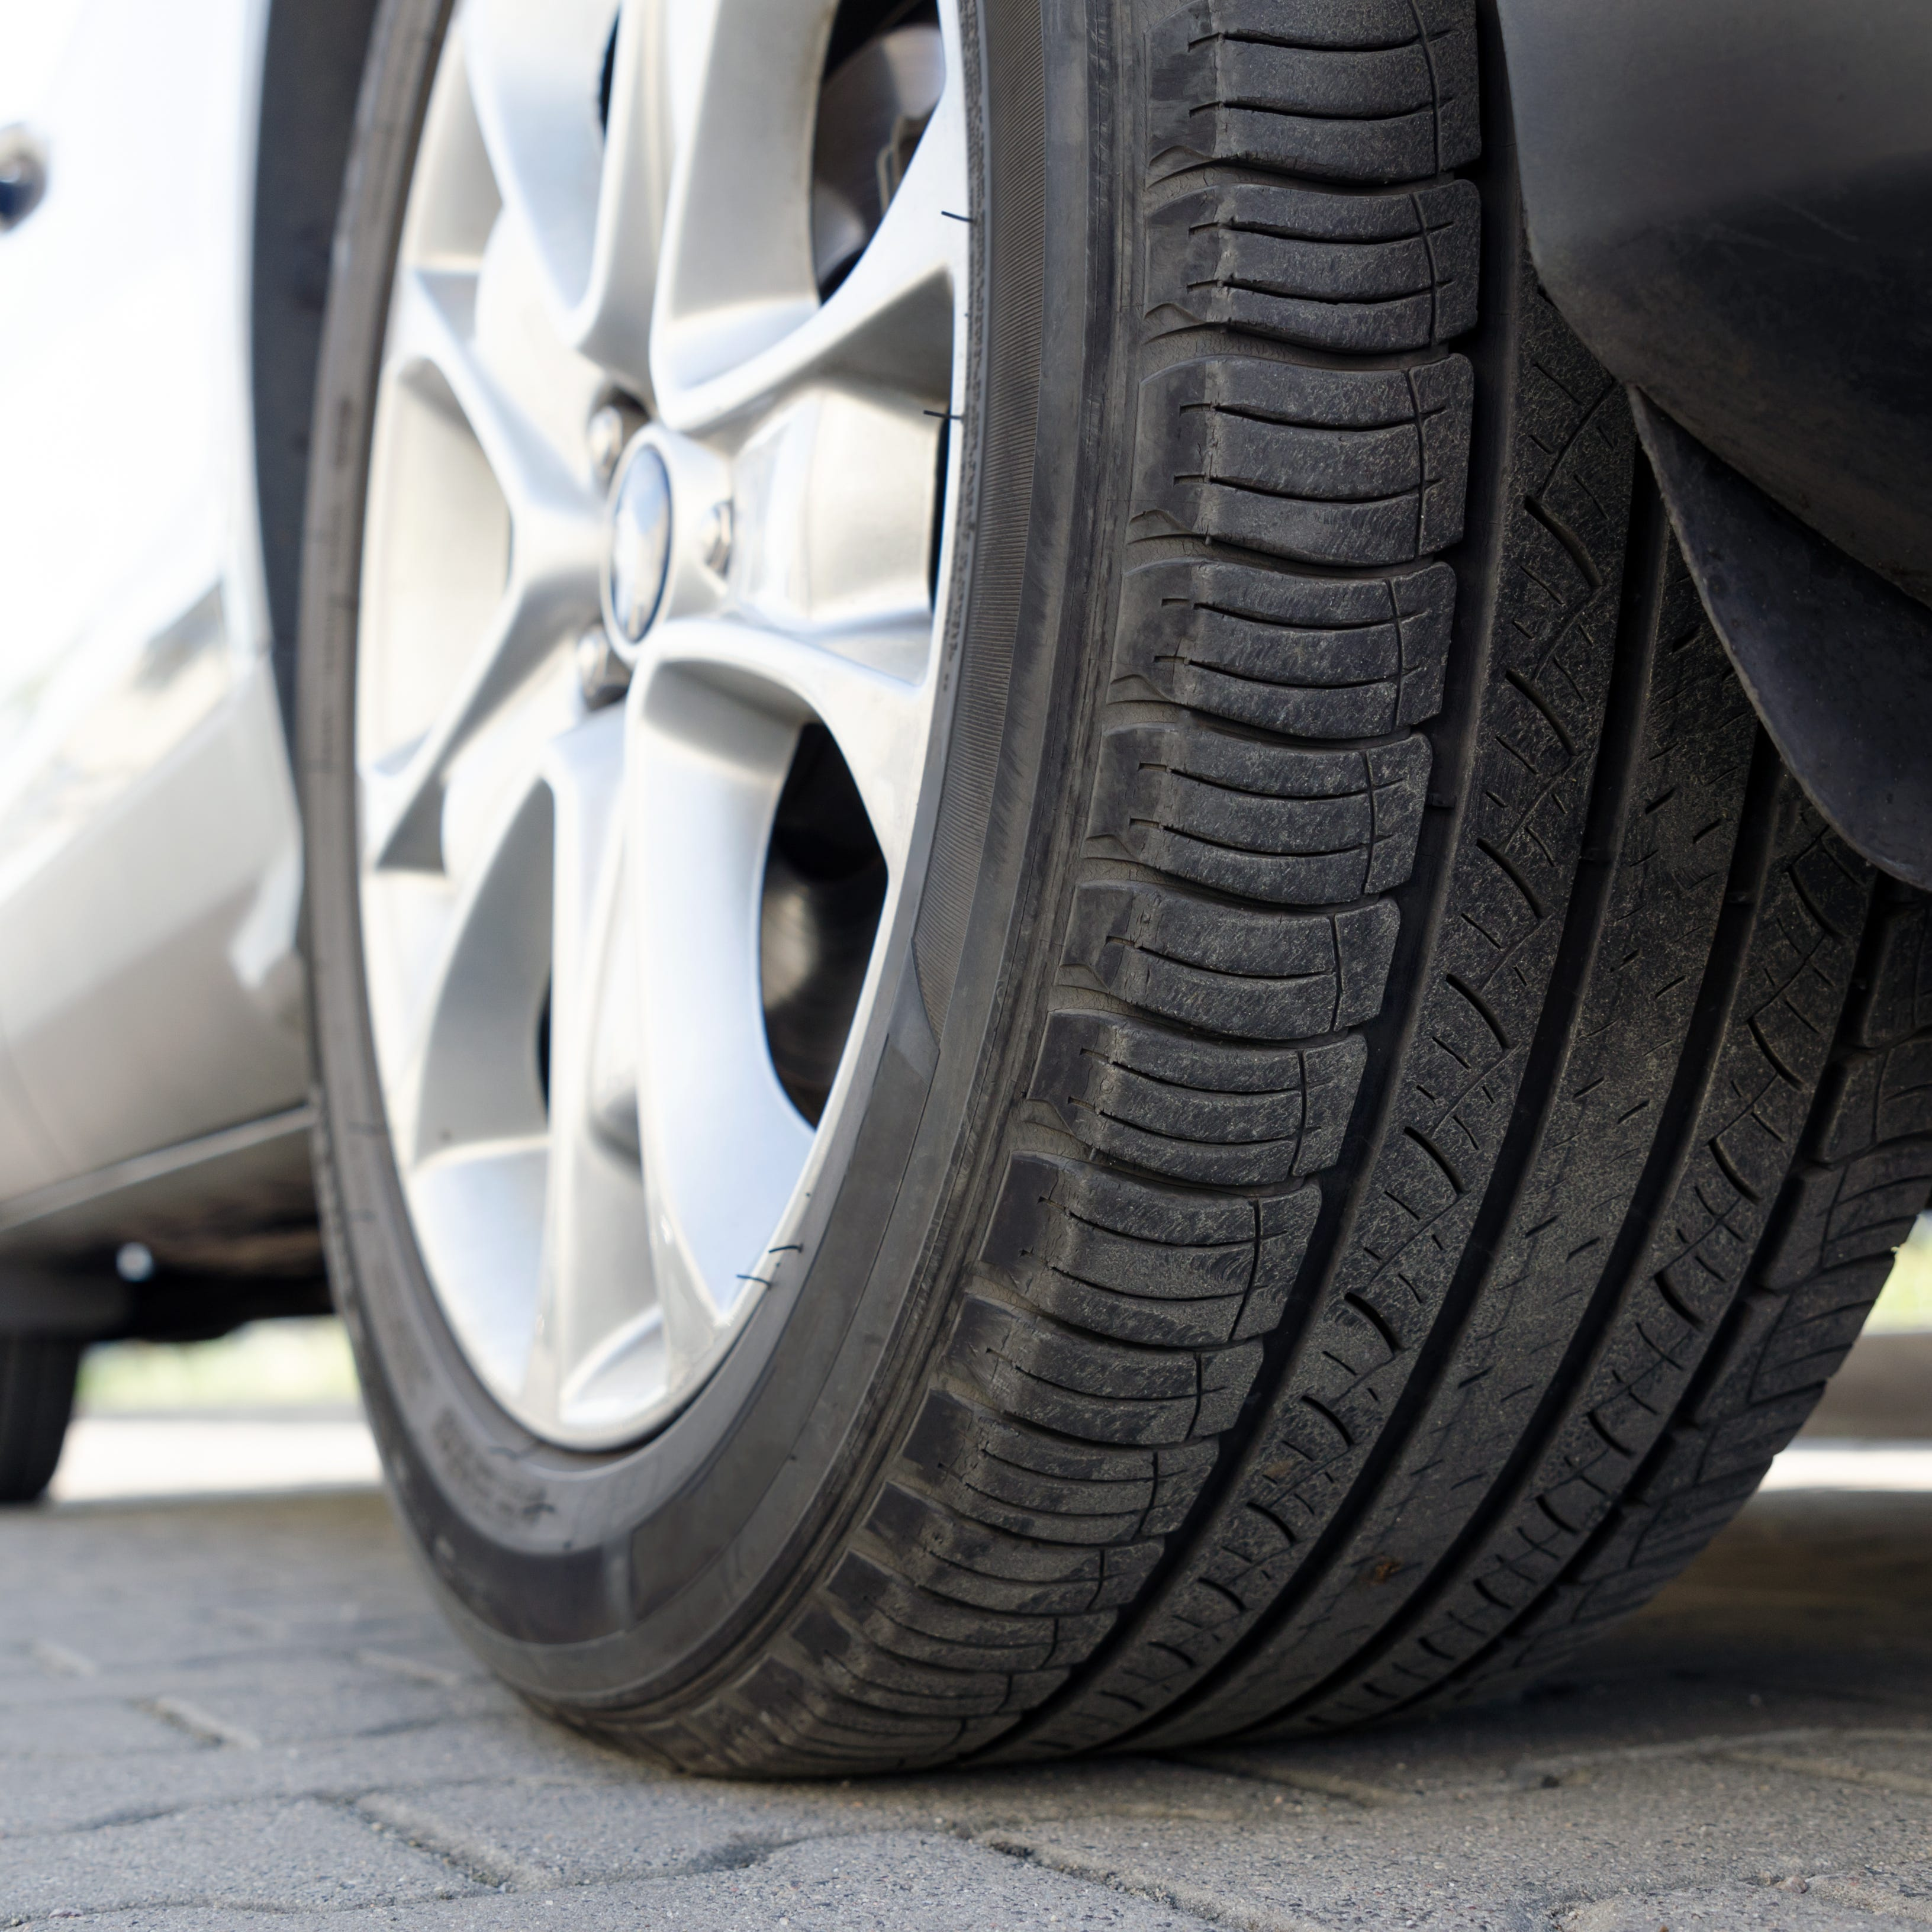 Chalking tires to enforce parking rules is unconstitutional, court says